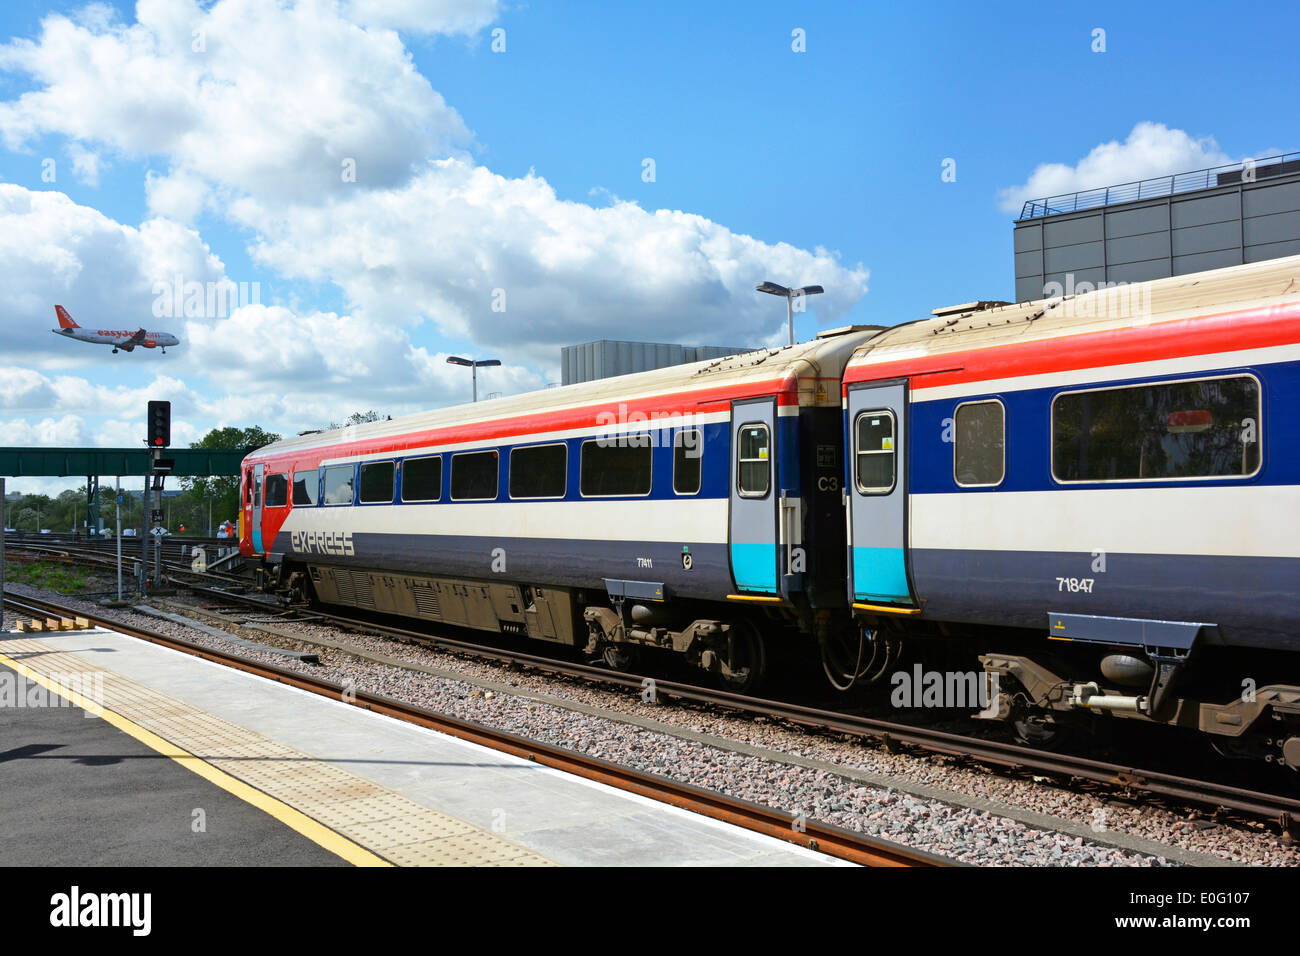 Gatwick Express train at Gatwick Airport station with Easy Jet plane landing - Stock Image